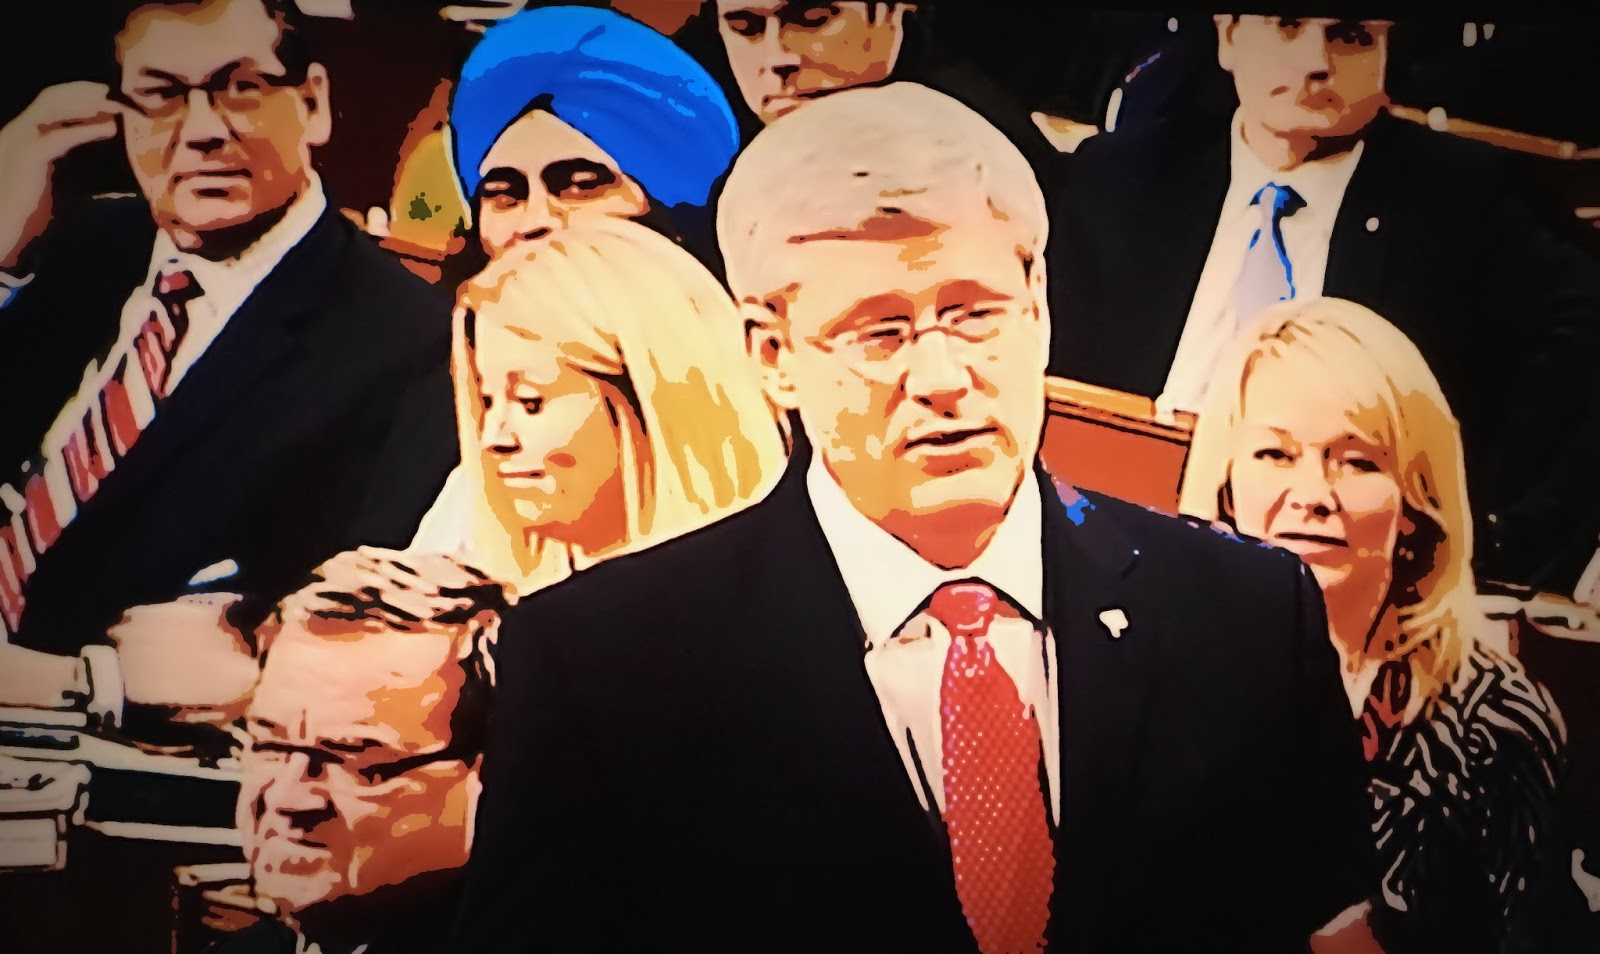 Montreal simon stephen harper jimbo flaherty and the fascist pigs it had to be one of the most bizarre sights i have ever seen in question period and yet another sign that the con regime is running out of steam publicscrutiny Images